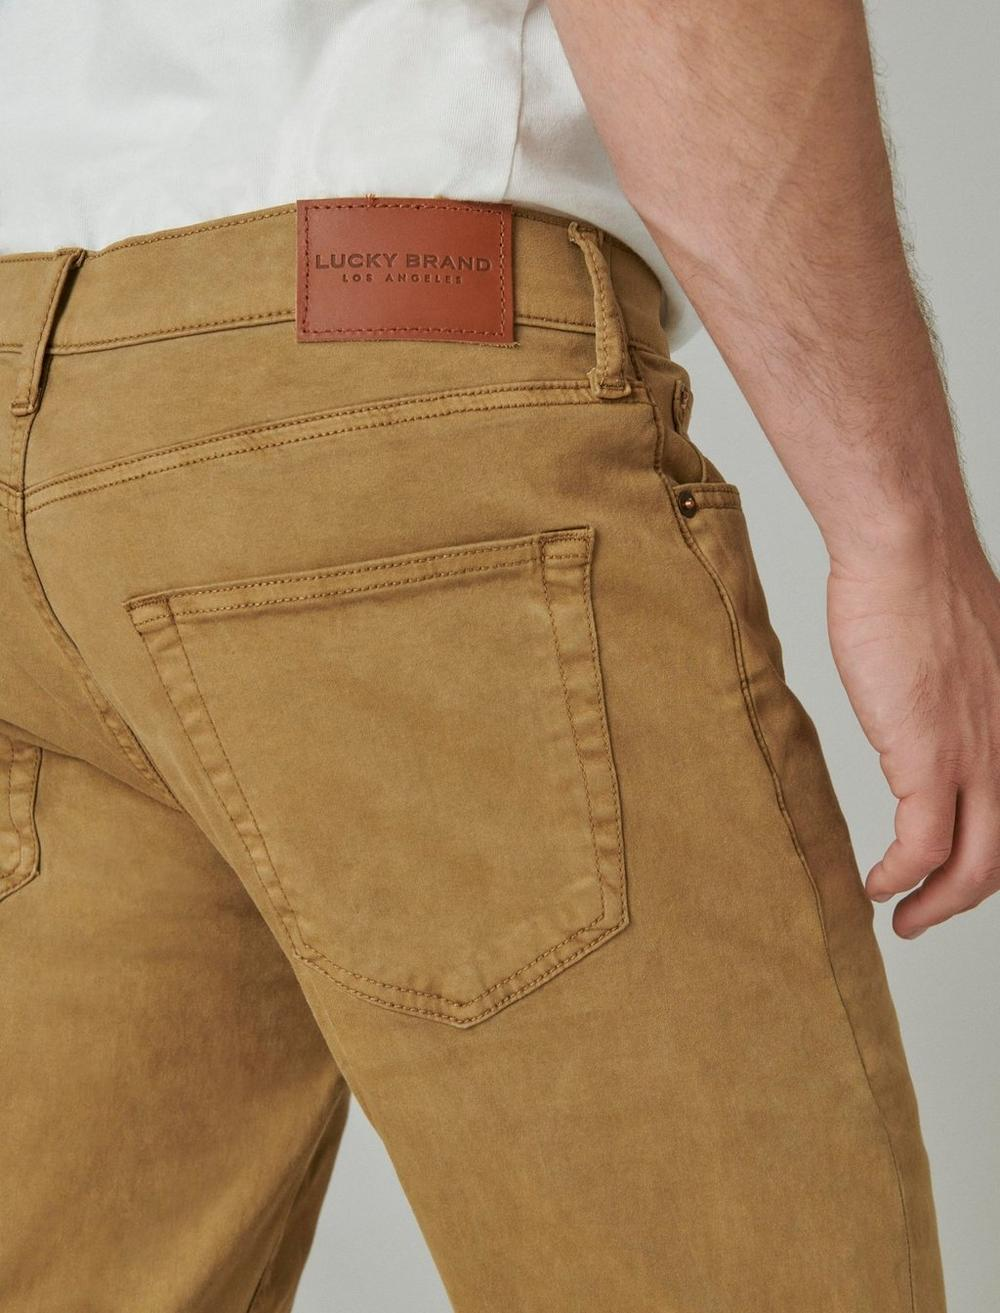 410 ATHLETIC STRAIGHT SATEEN STRETCH JEAN, image 6